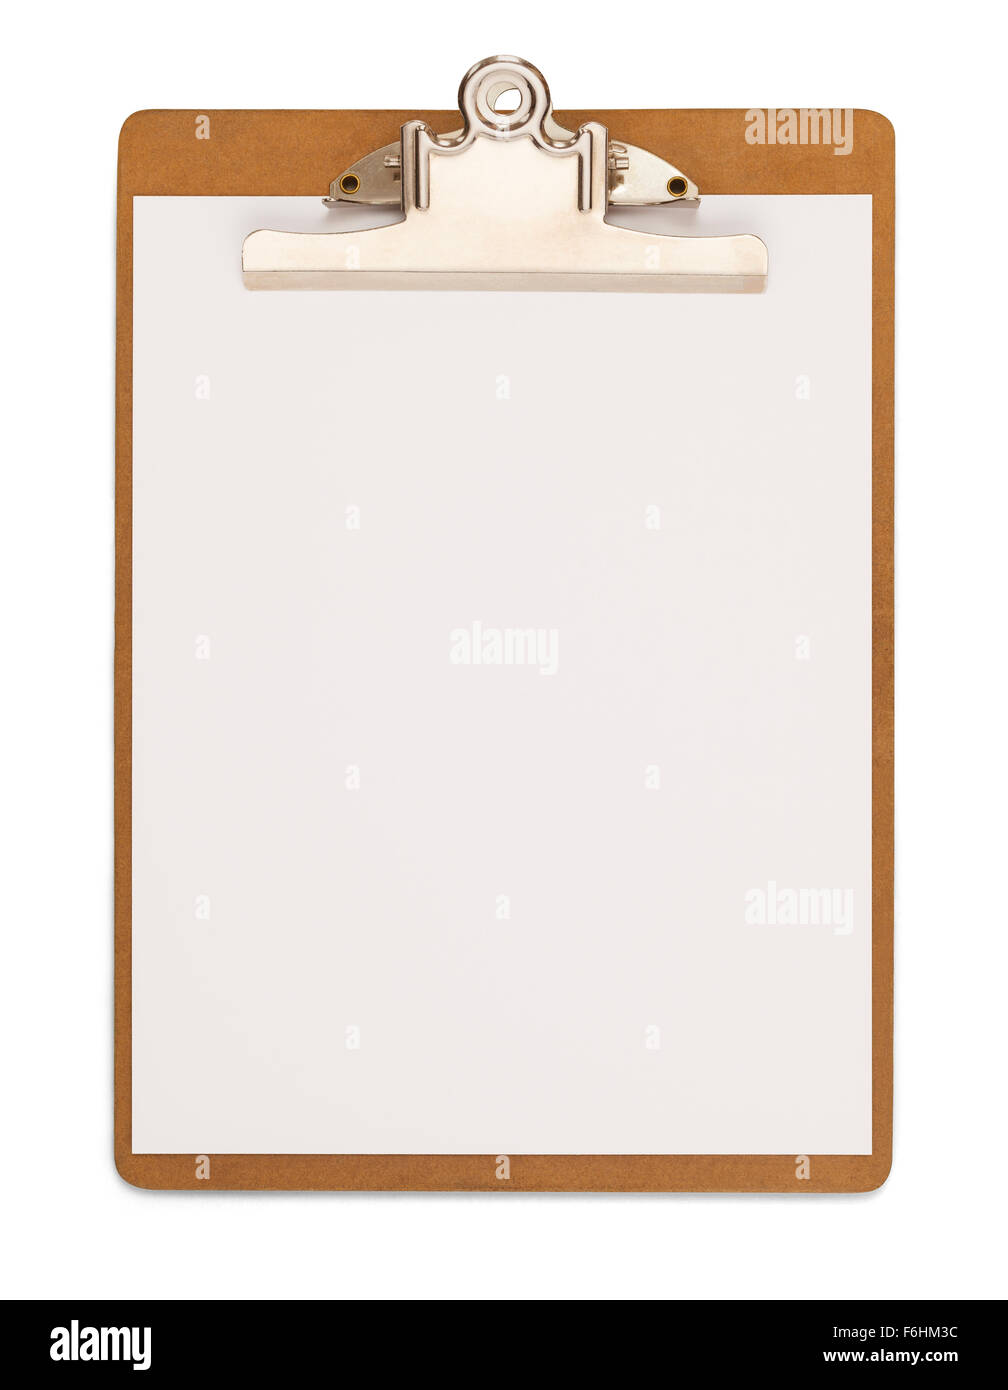 Wood Clipboard with Blank Paper Isolated on a White Background. - Stock Image